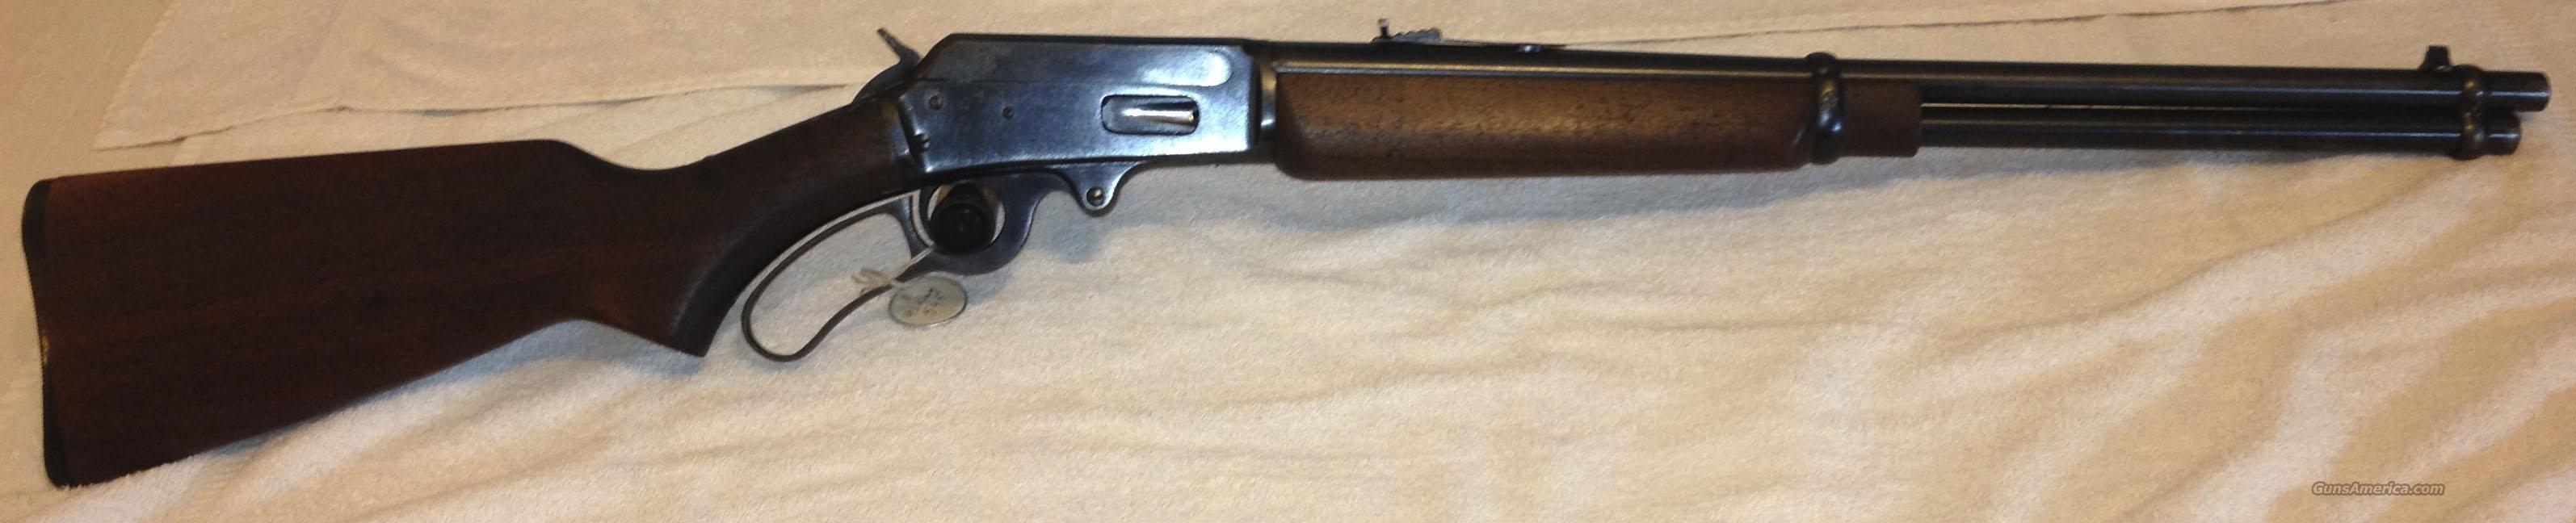 Marlin Model 36 RC Cal 30-30  Guns > Rifles > Marlin Rifles > Modern > Lever Action